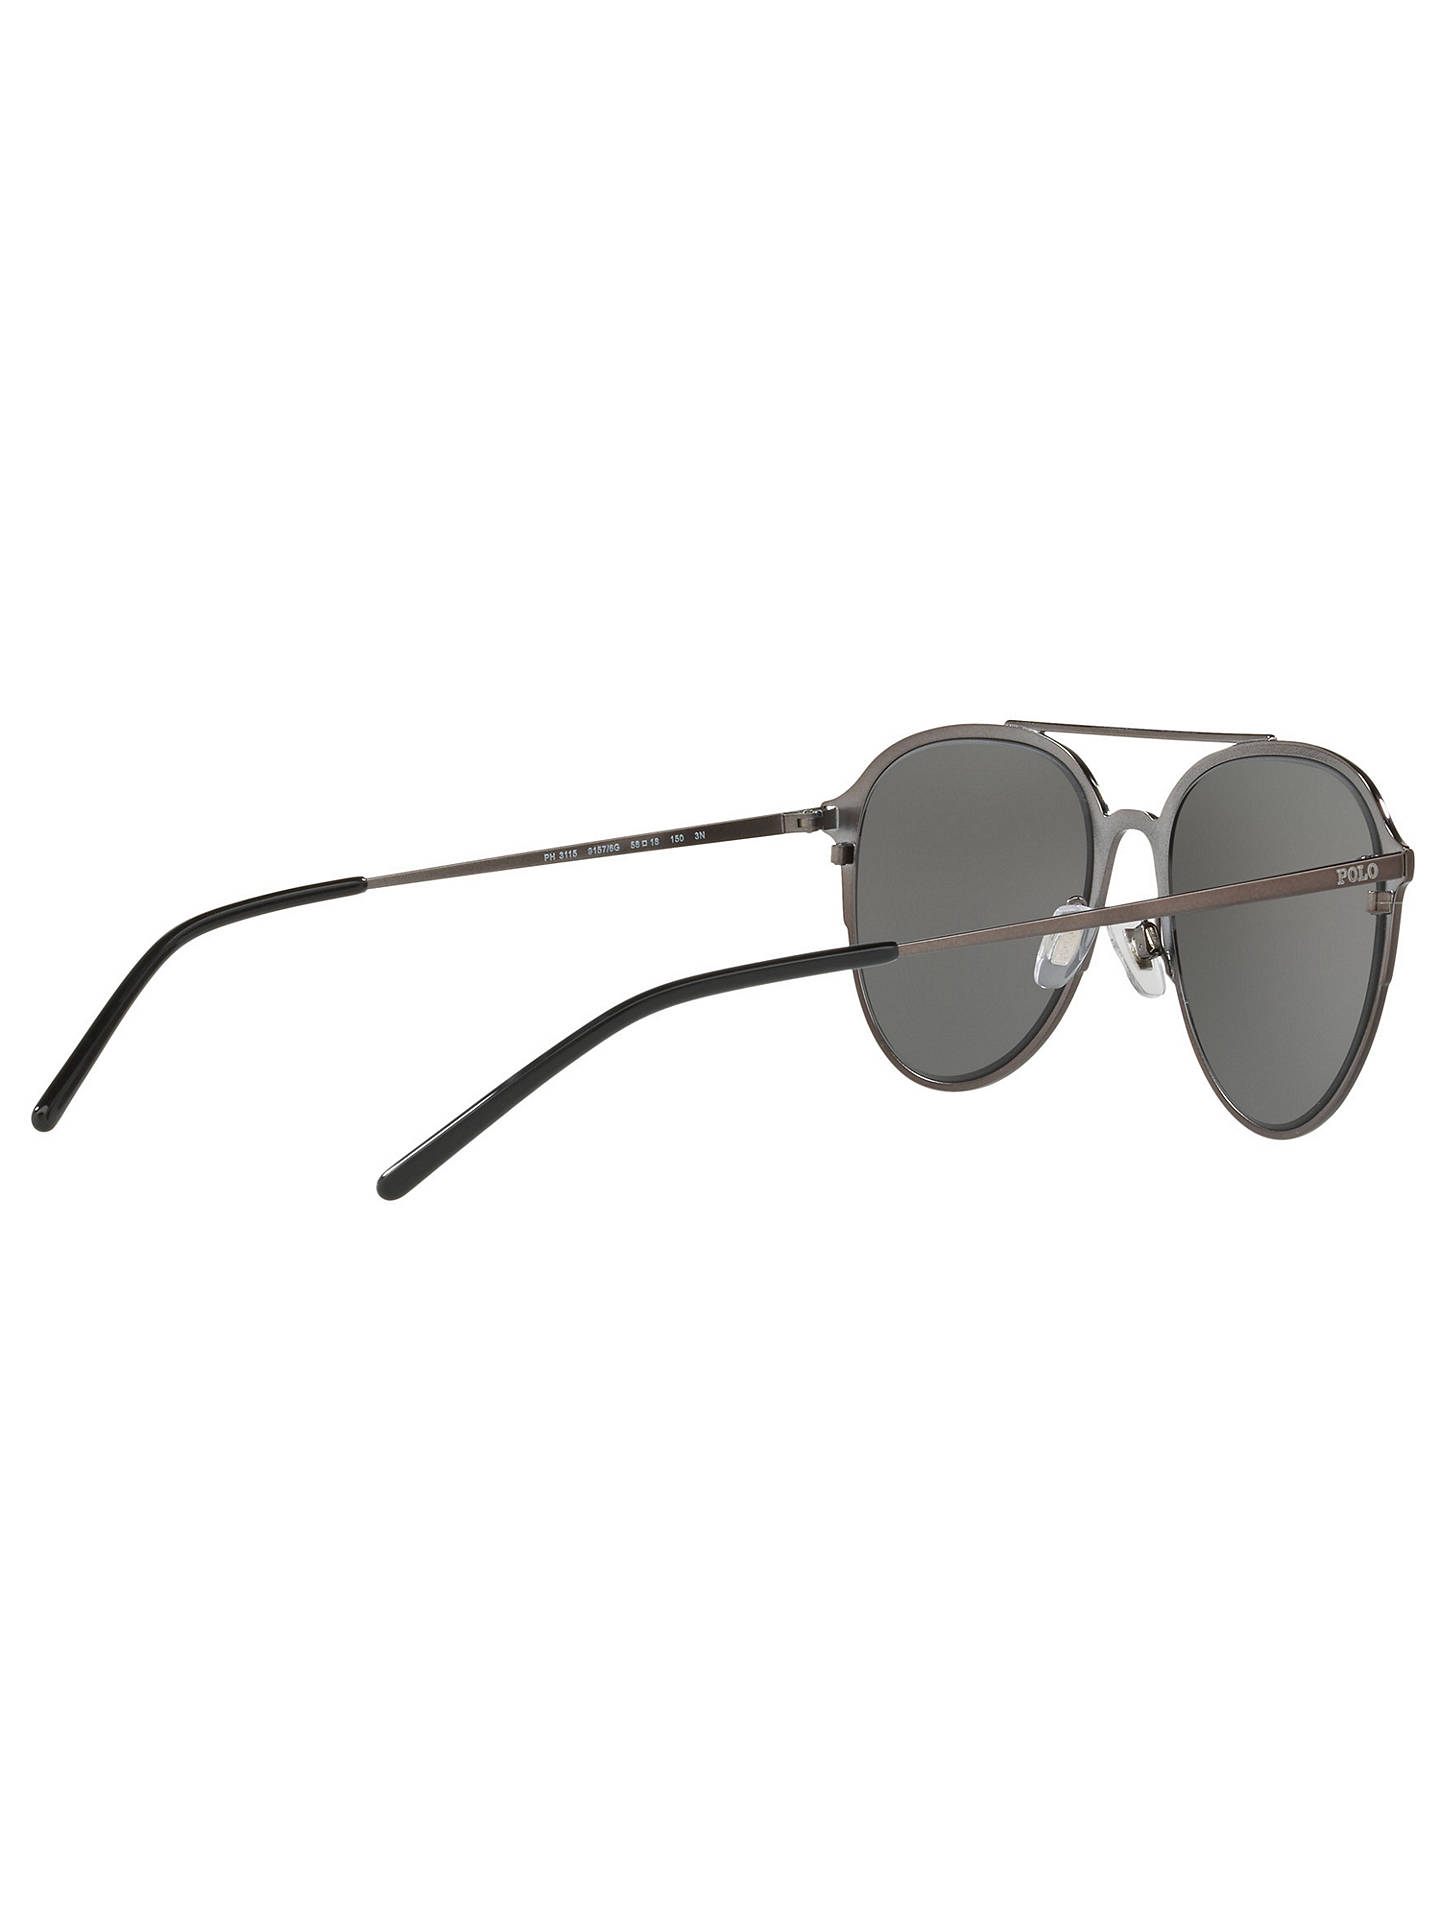 BuyPolo Ralph Lauren PH3115 Men's Aviator Sunglasses, Gunmetal/Silver Online at johnlewis.com